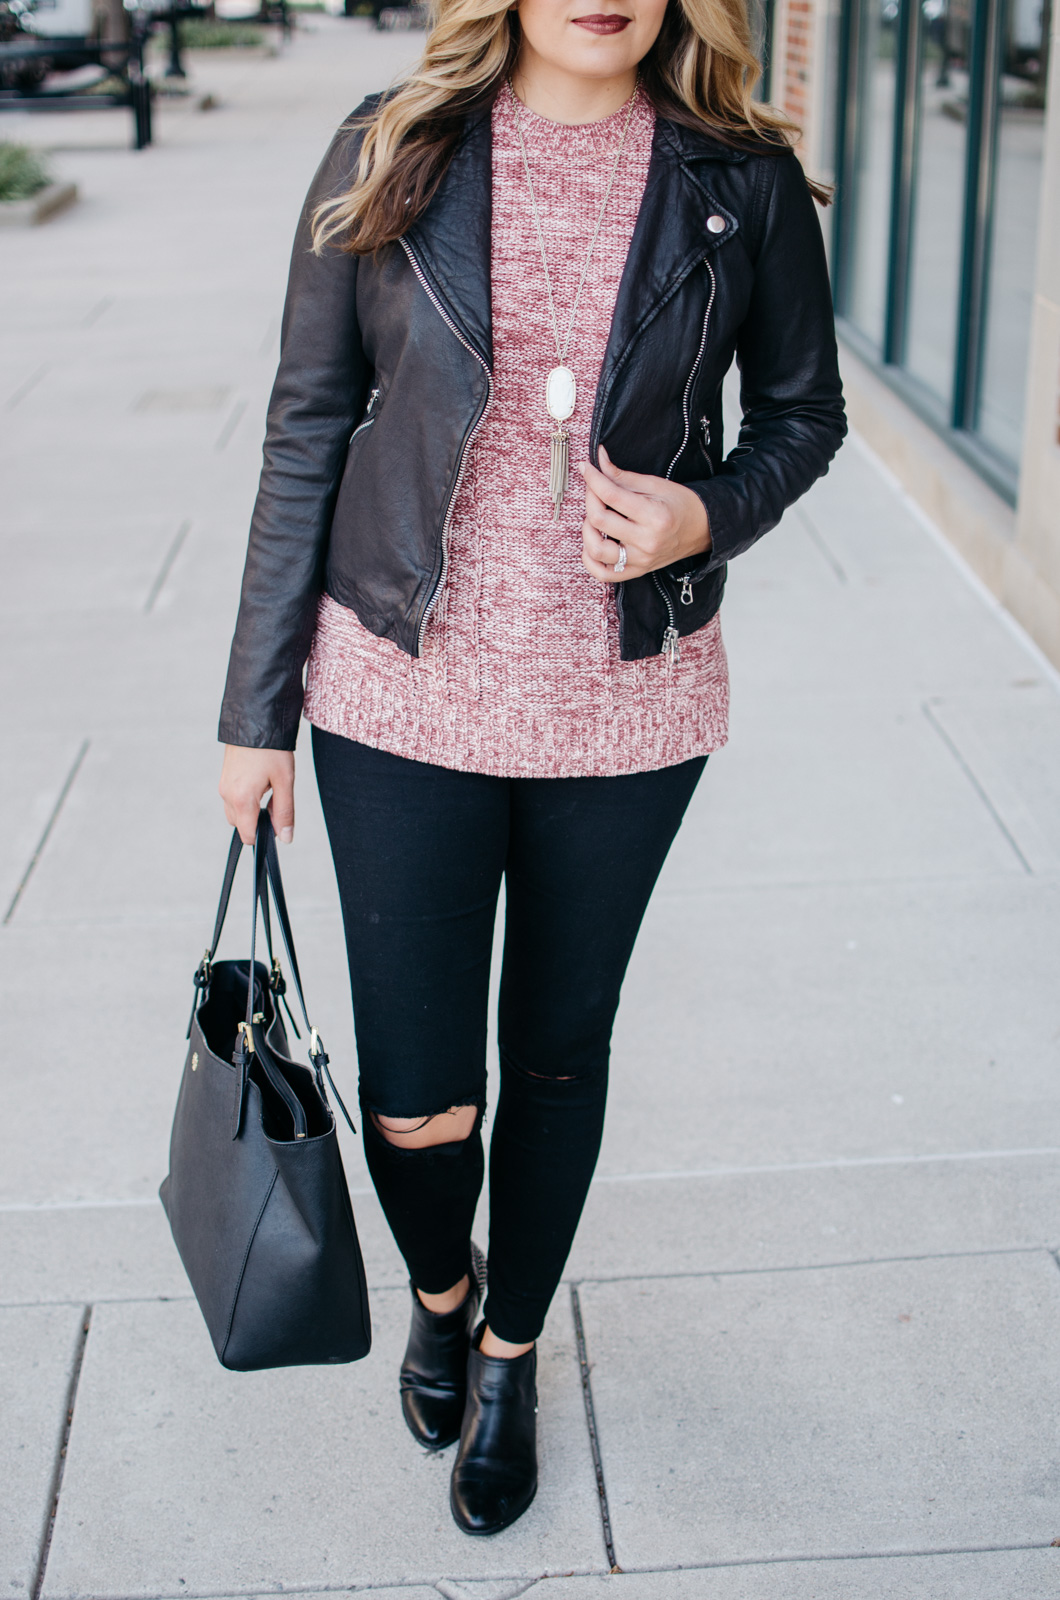 how wear sweater with a moto jacket - leather jacket sweater outfit | For more Fall outfit ideas, click through to bylaurenm.com!